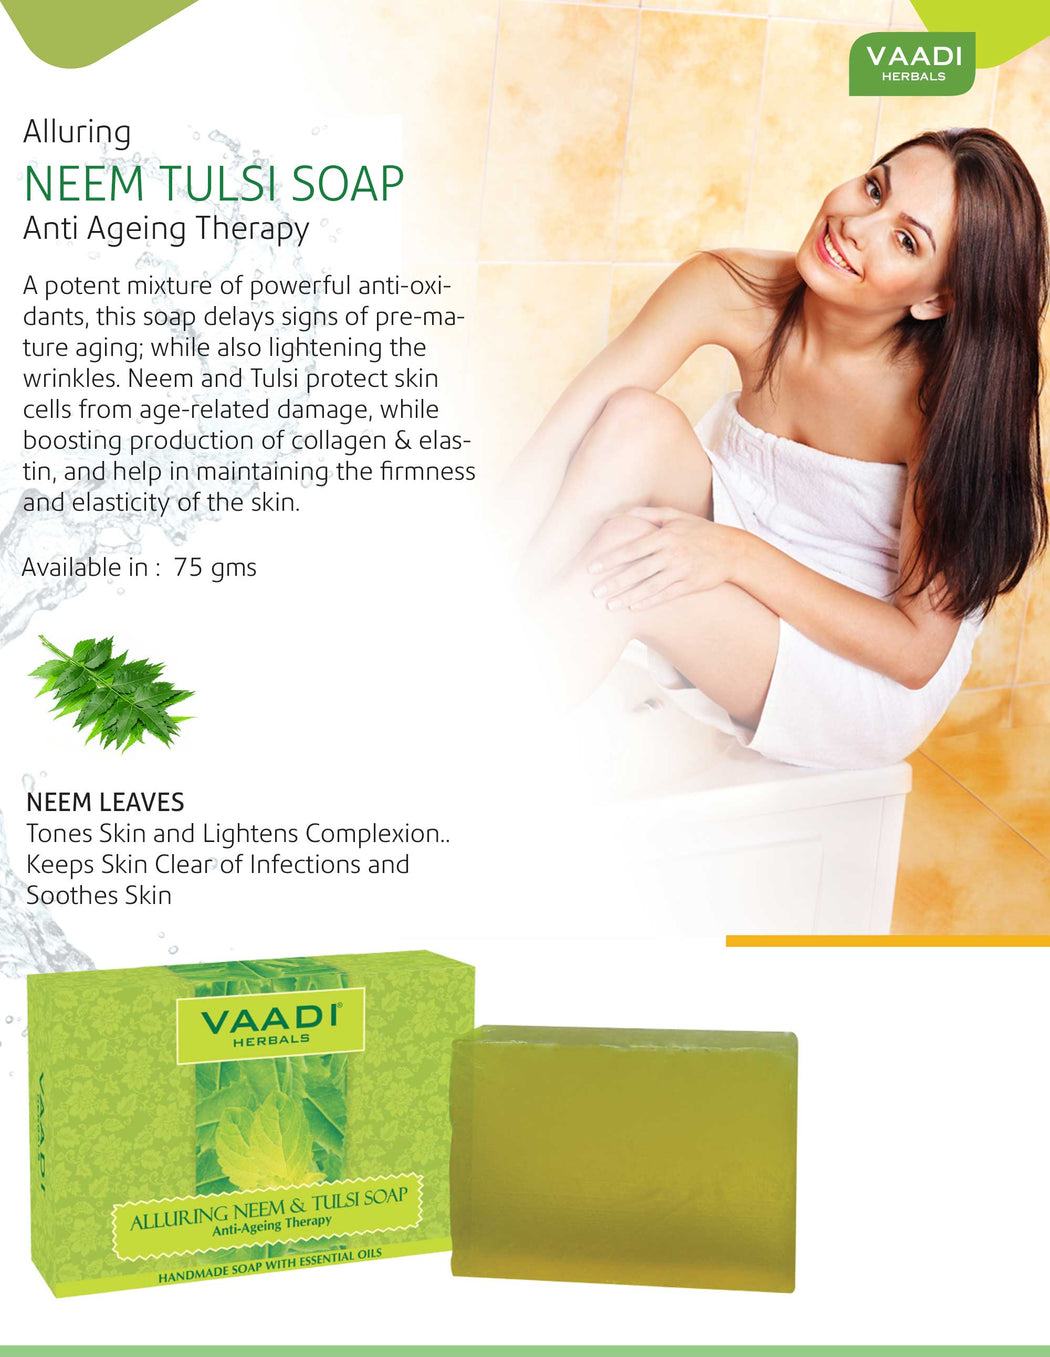 Organic Anti Bacterial Neem Tulsi Soap with Aloe Vera, Vitamin E & Tea Tree Oil (3 x 75 gms / 2.7 oz)